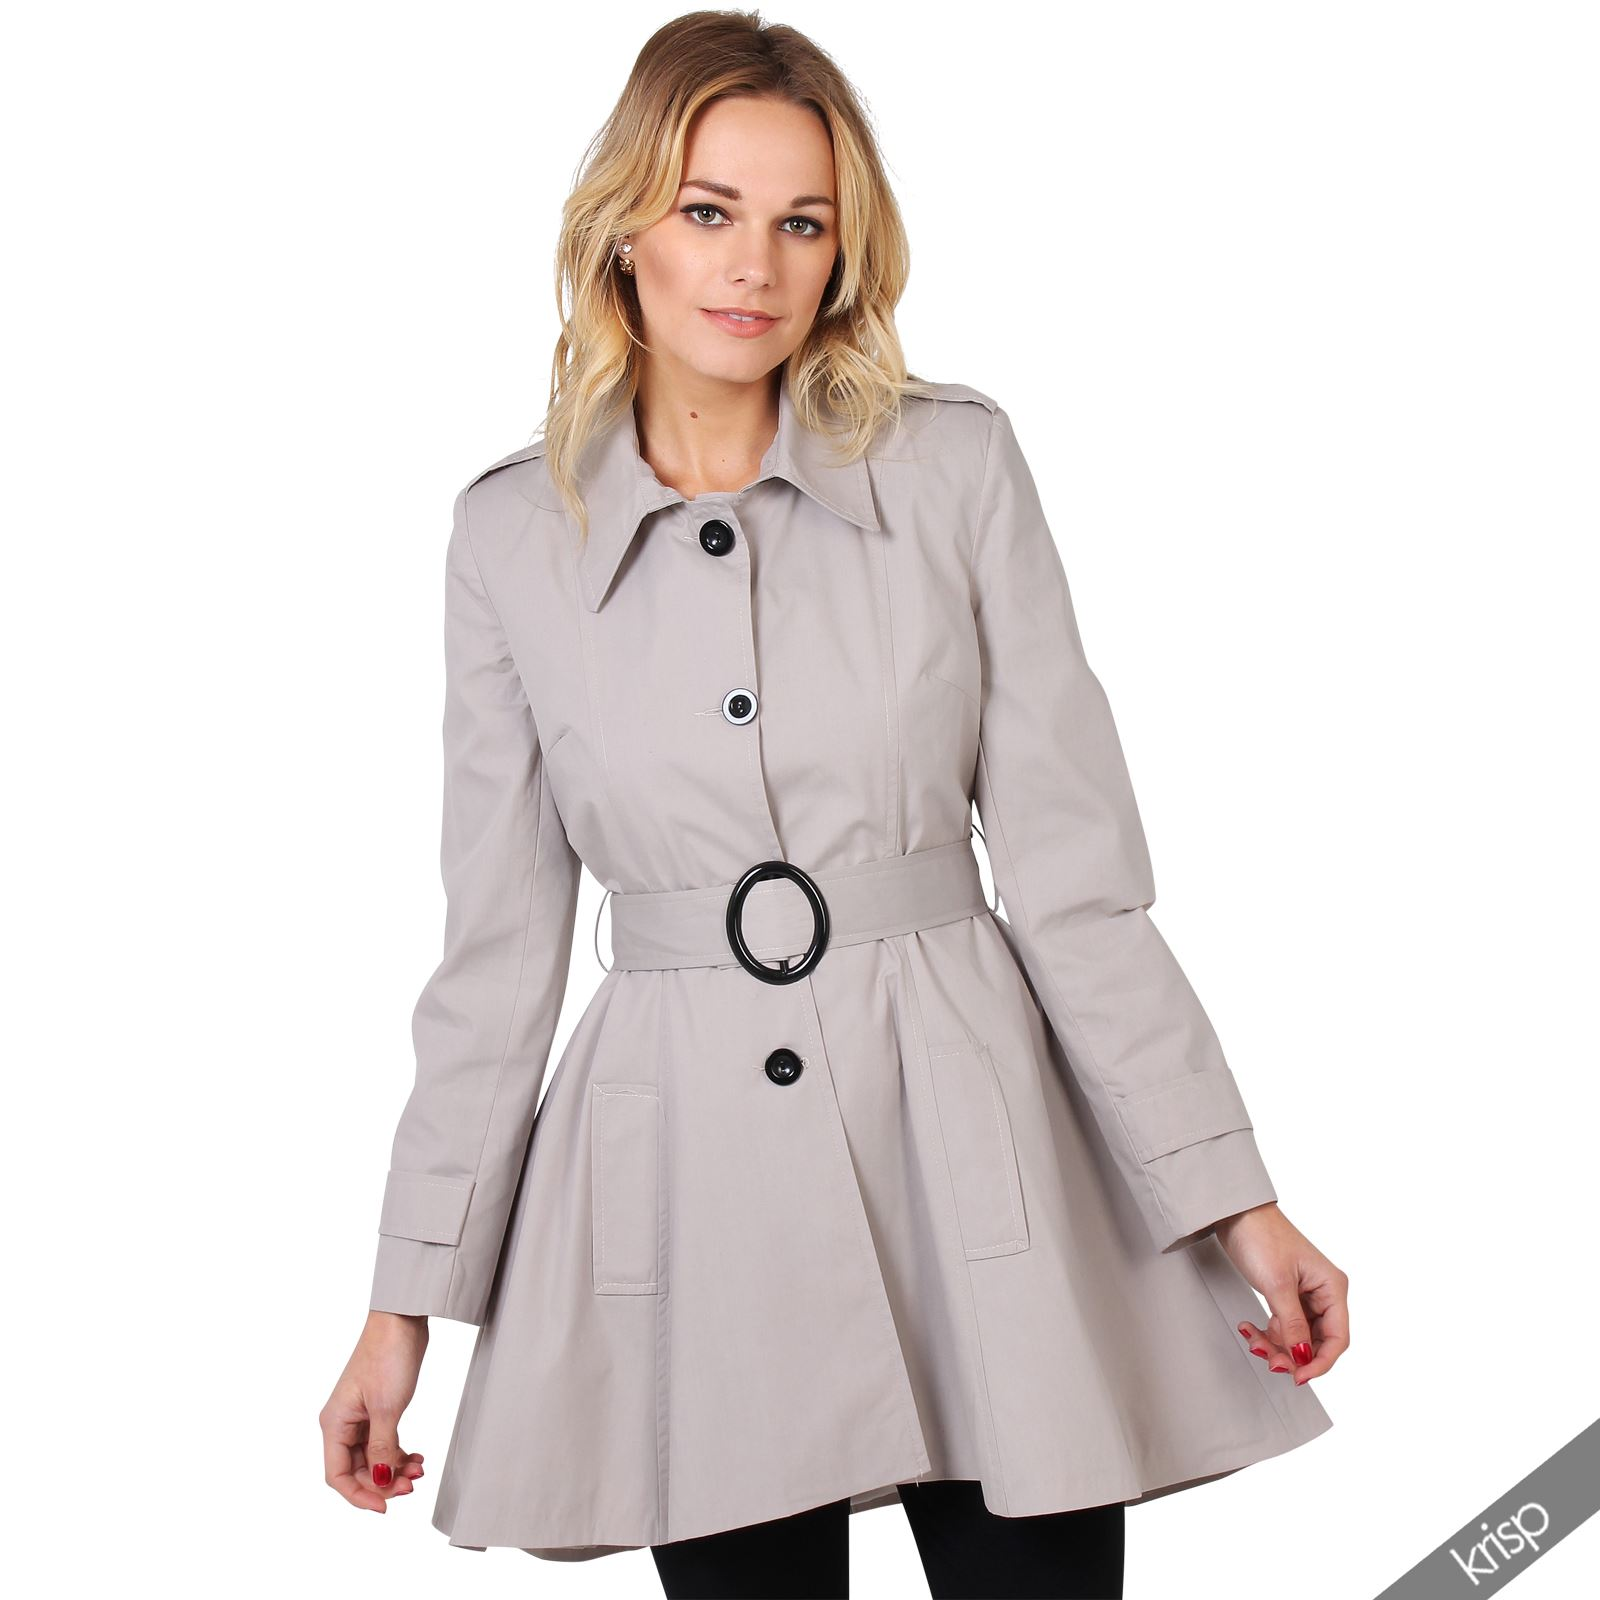 Shop ASOS' range of women's rain coats and trench coats. Shop from a variety of rainy-day outerwear.